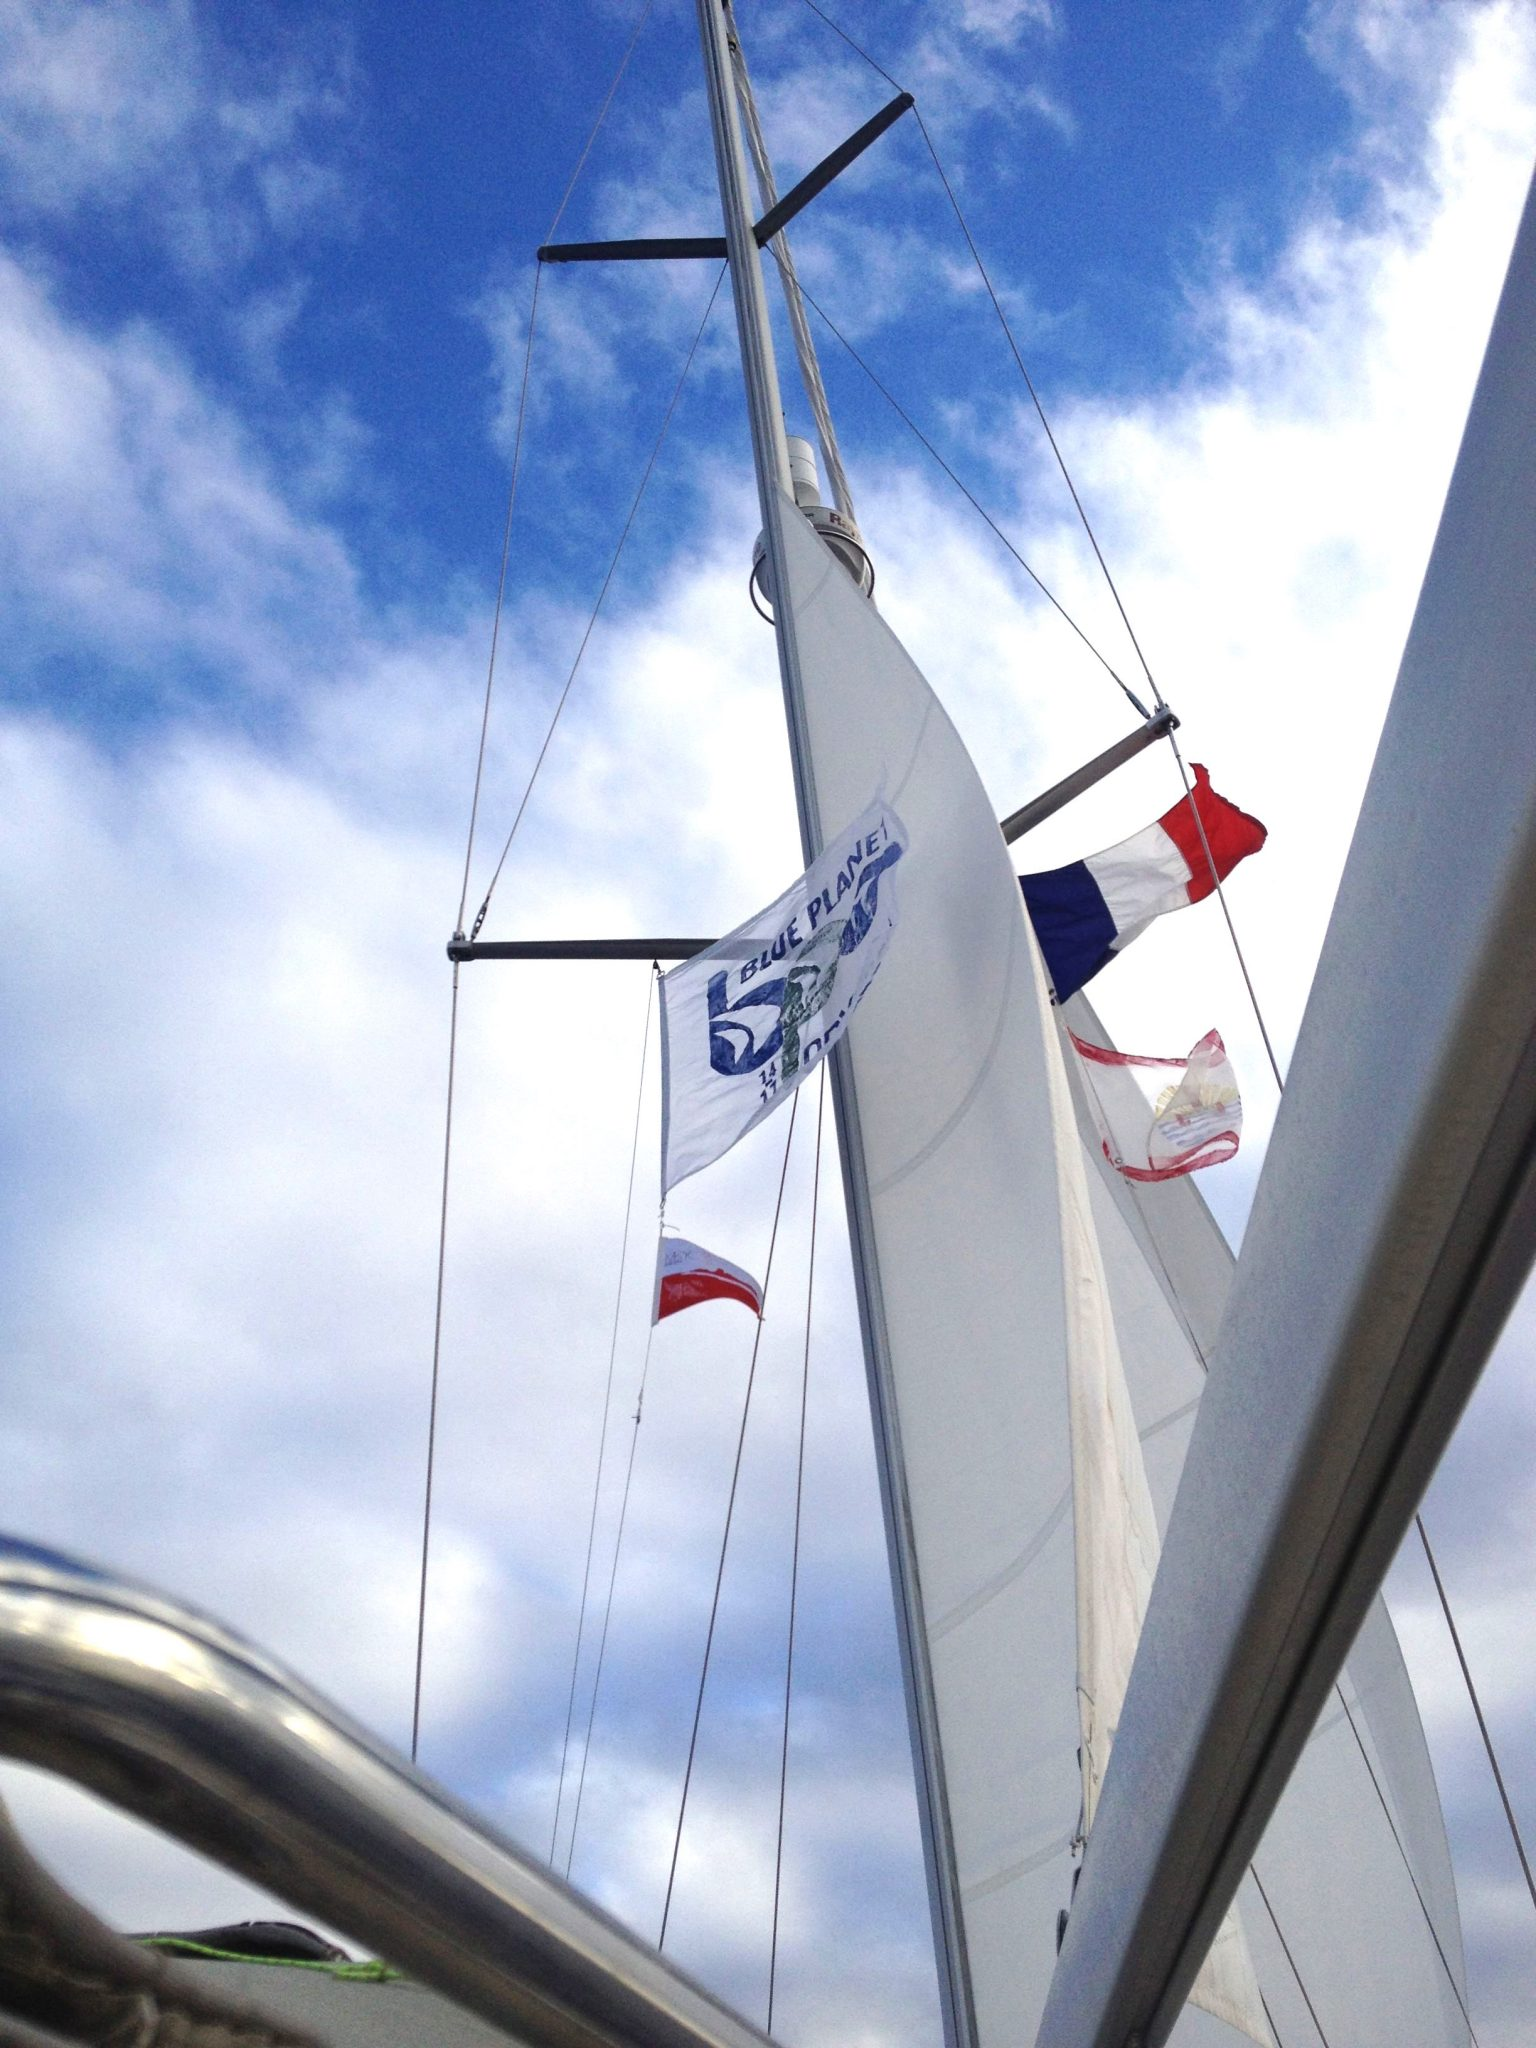 61. Joyful leaving Bora Bora flying the MaiKai Yacht Club Pennant, Blue Planet Odyssey flag, French Polynesia courtesy flag, and the French courtesy flag from her spreader halyards